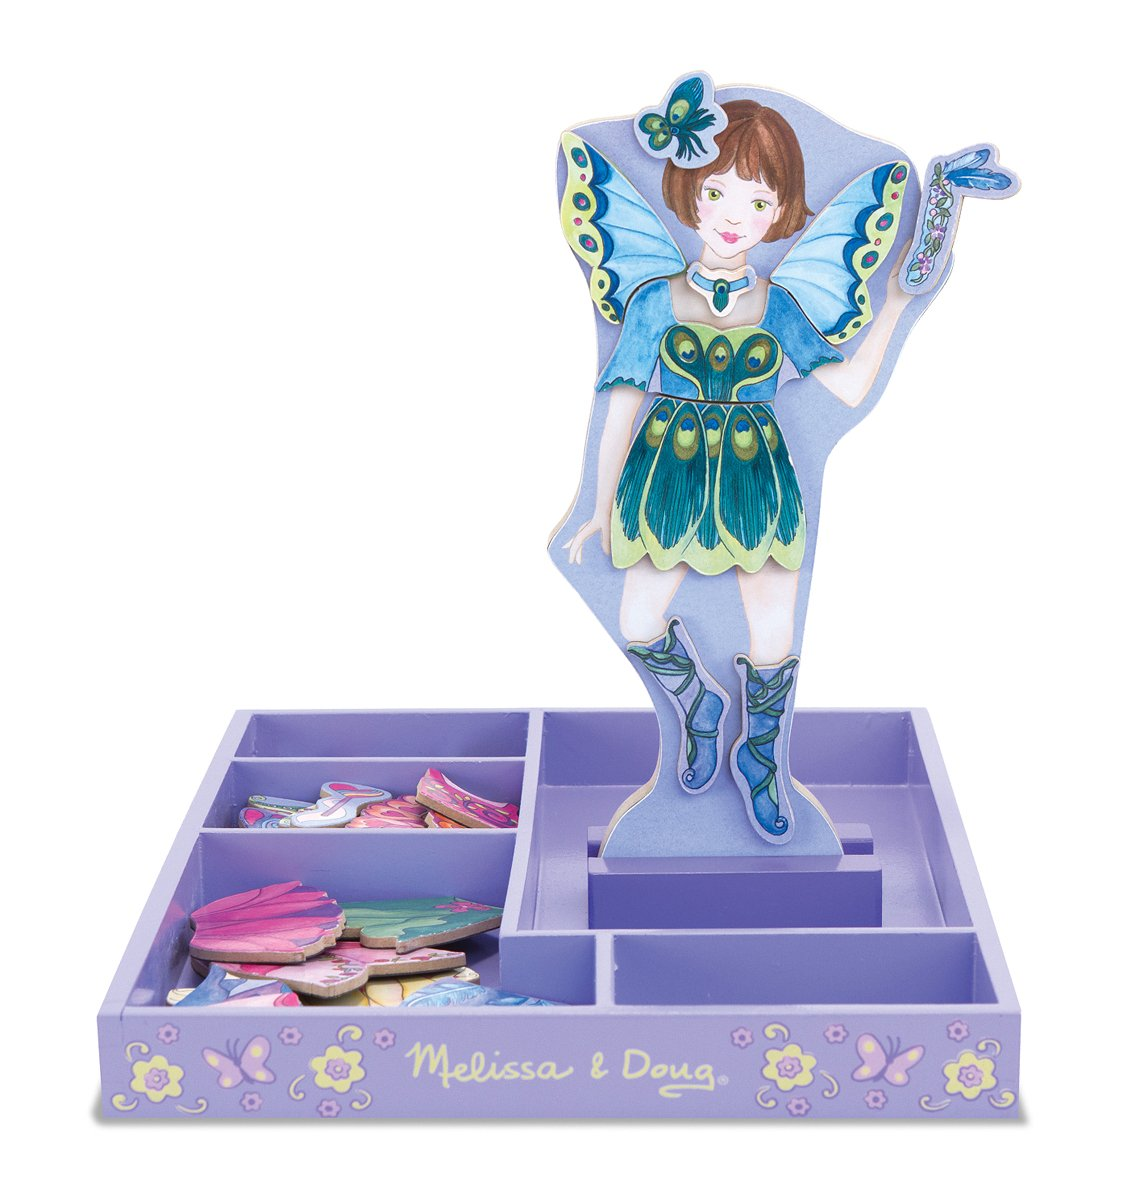 Melissa & Doug Petal Fairy Wooden Dress-Up Doll and Stand - 54 Magnetic Accessories by Melissa & Doug